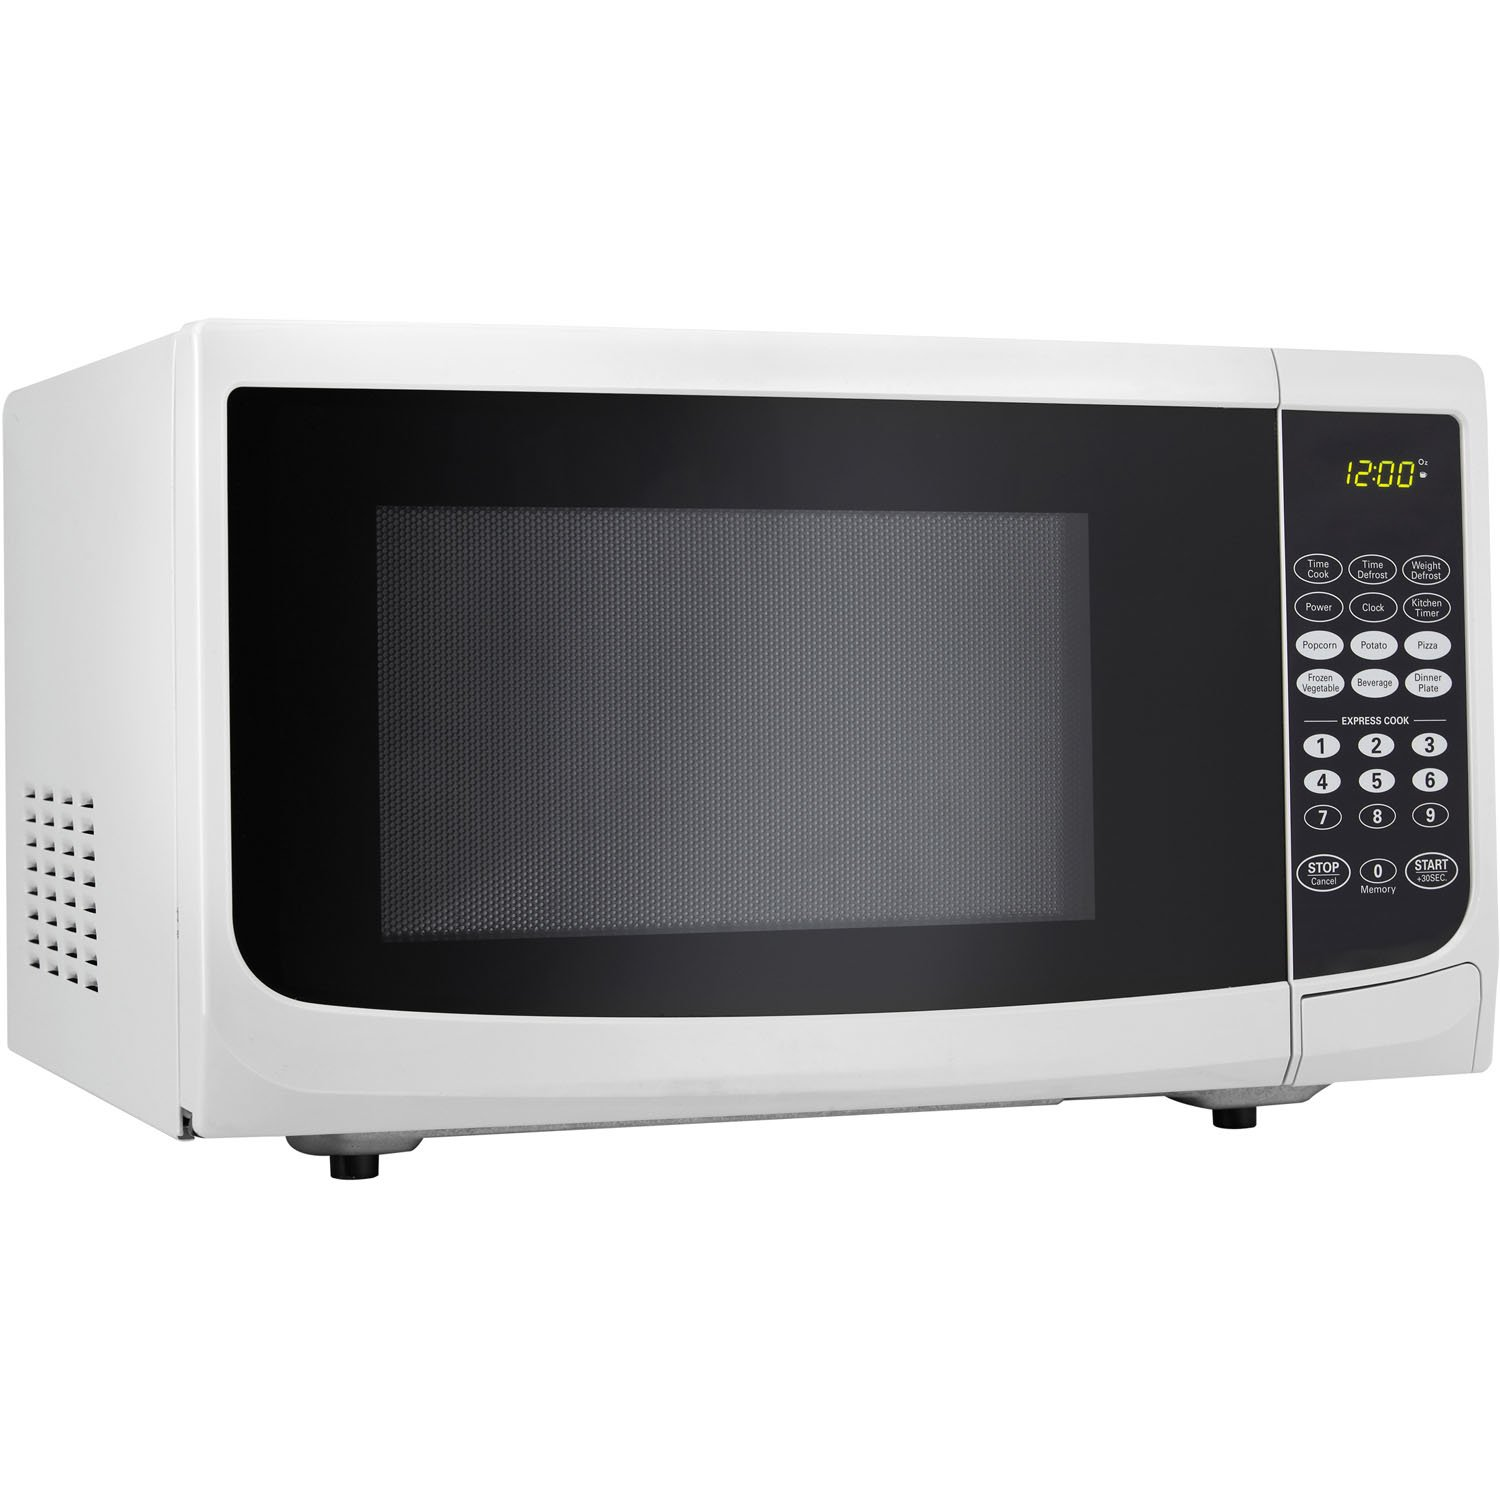 Countertop Microwave What To Look For : ... AUTOMATIC STOVE OVEN Microwave Stainless ELECTRIC Countertop Cooking